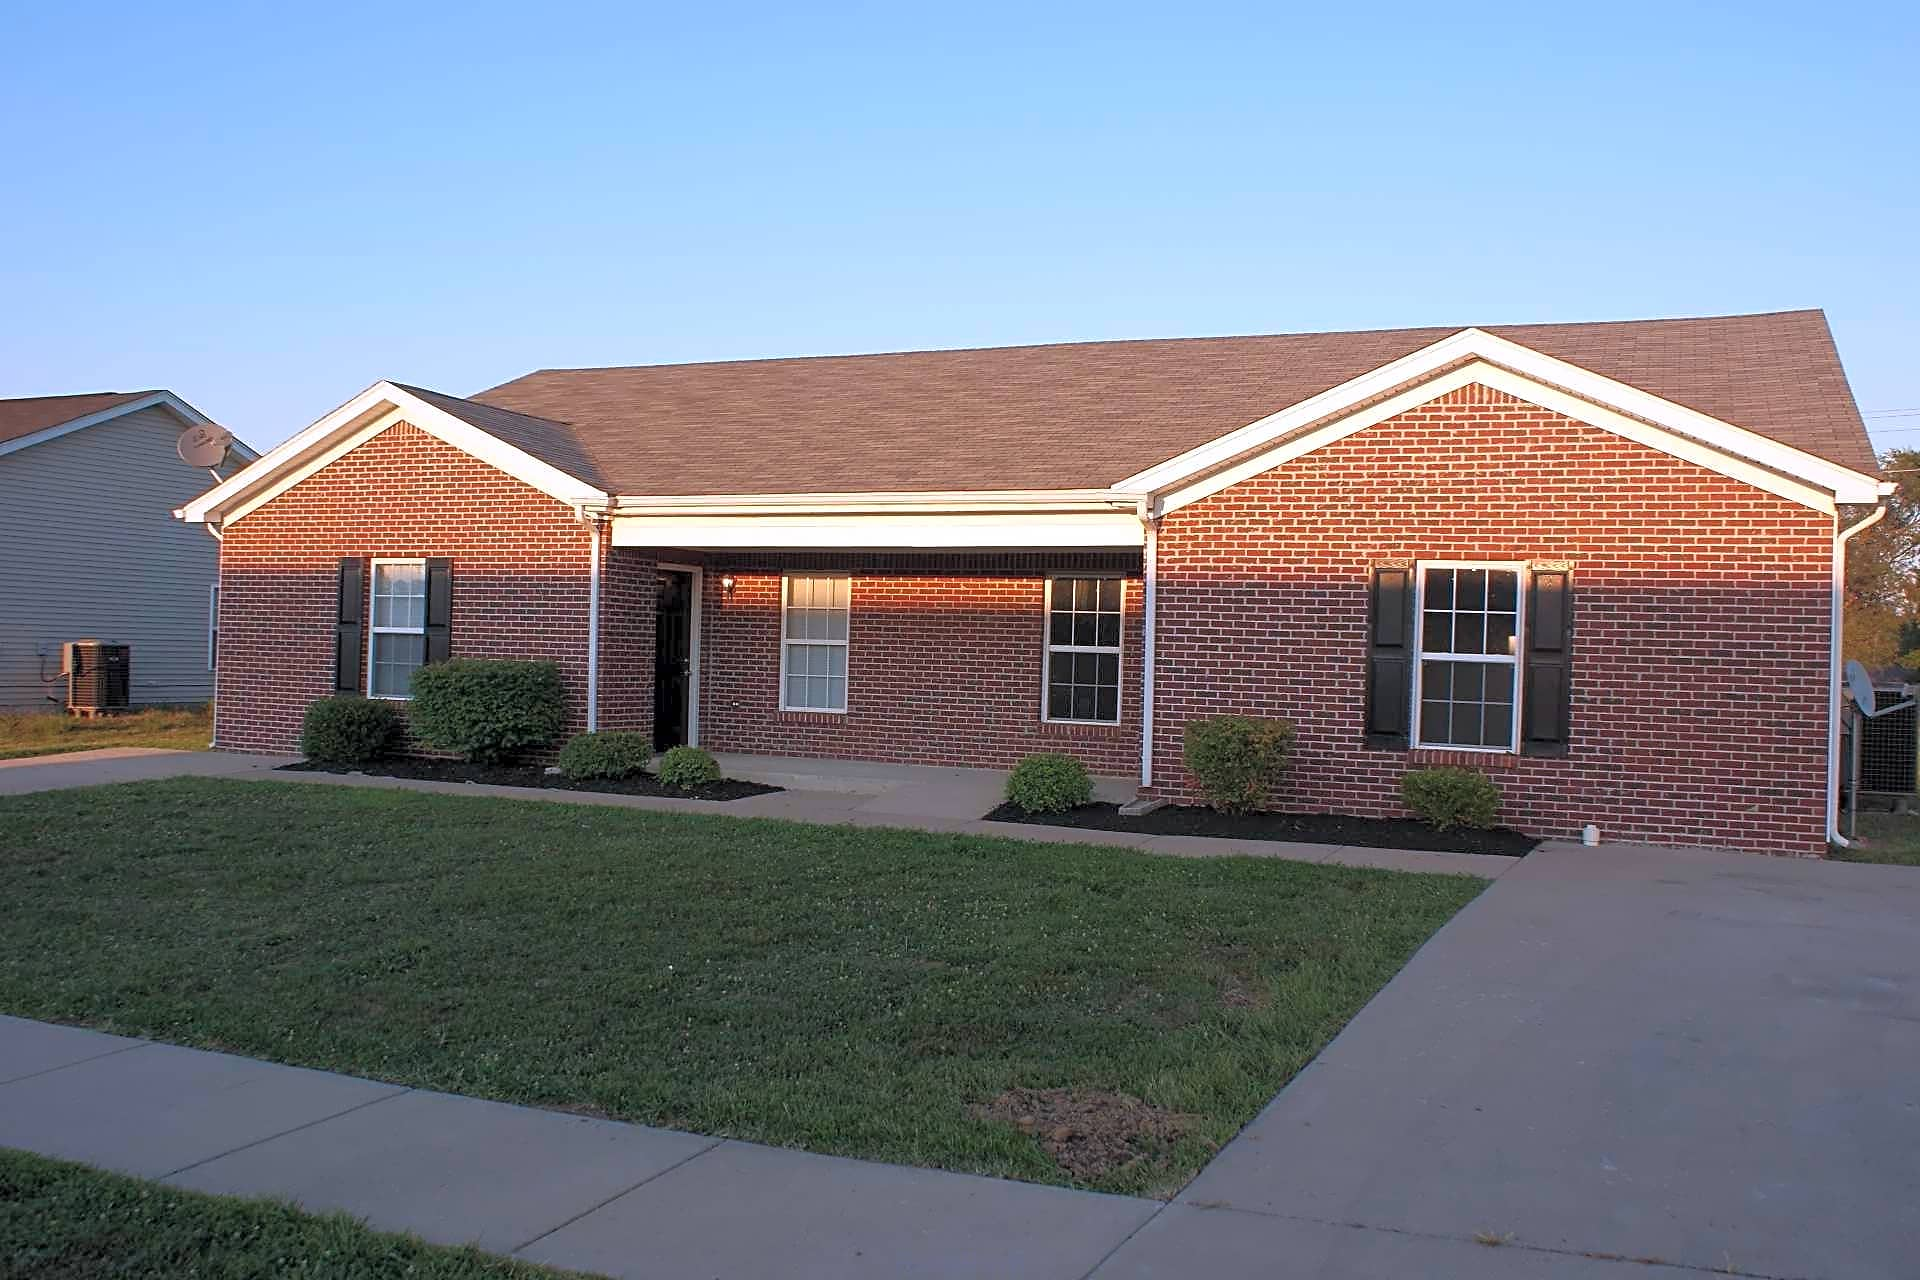 Duplex for Rent in Shelbyville